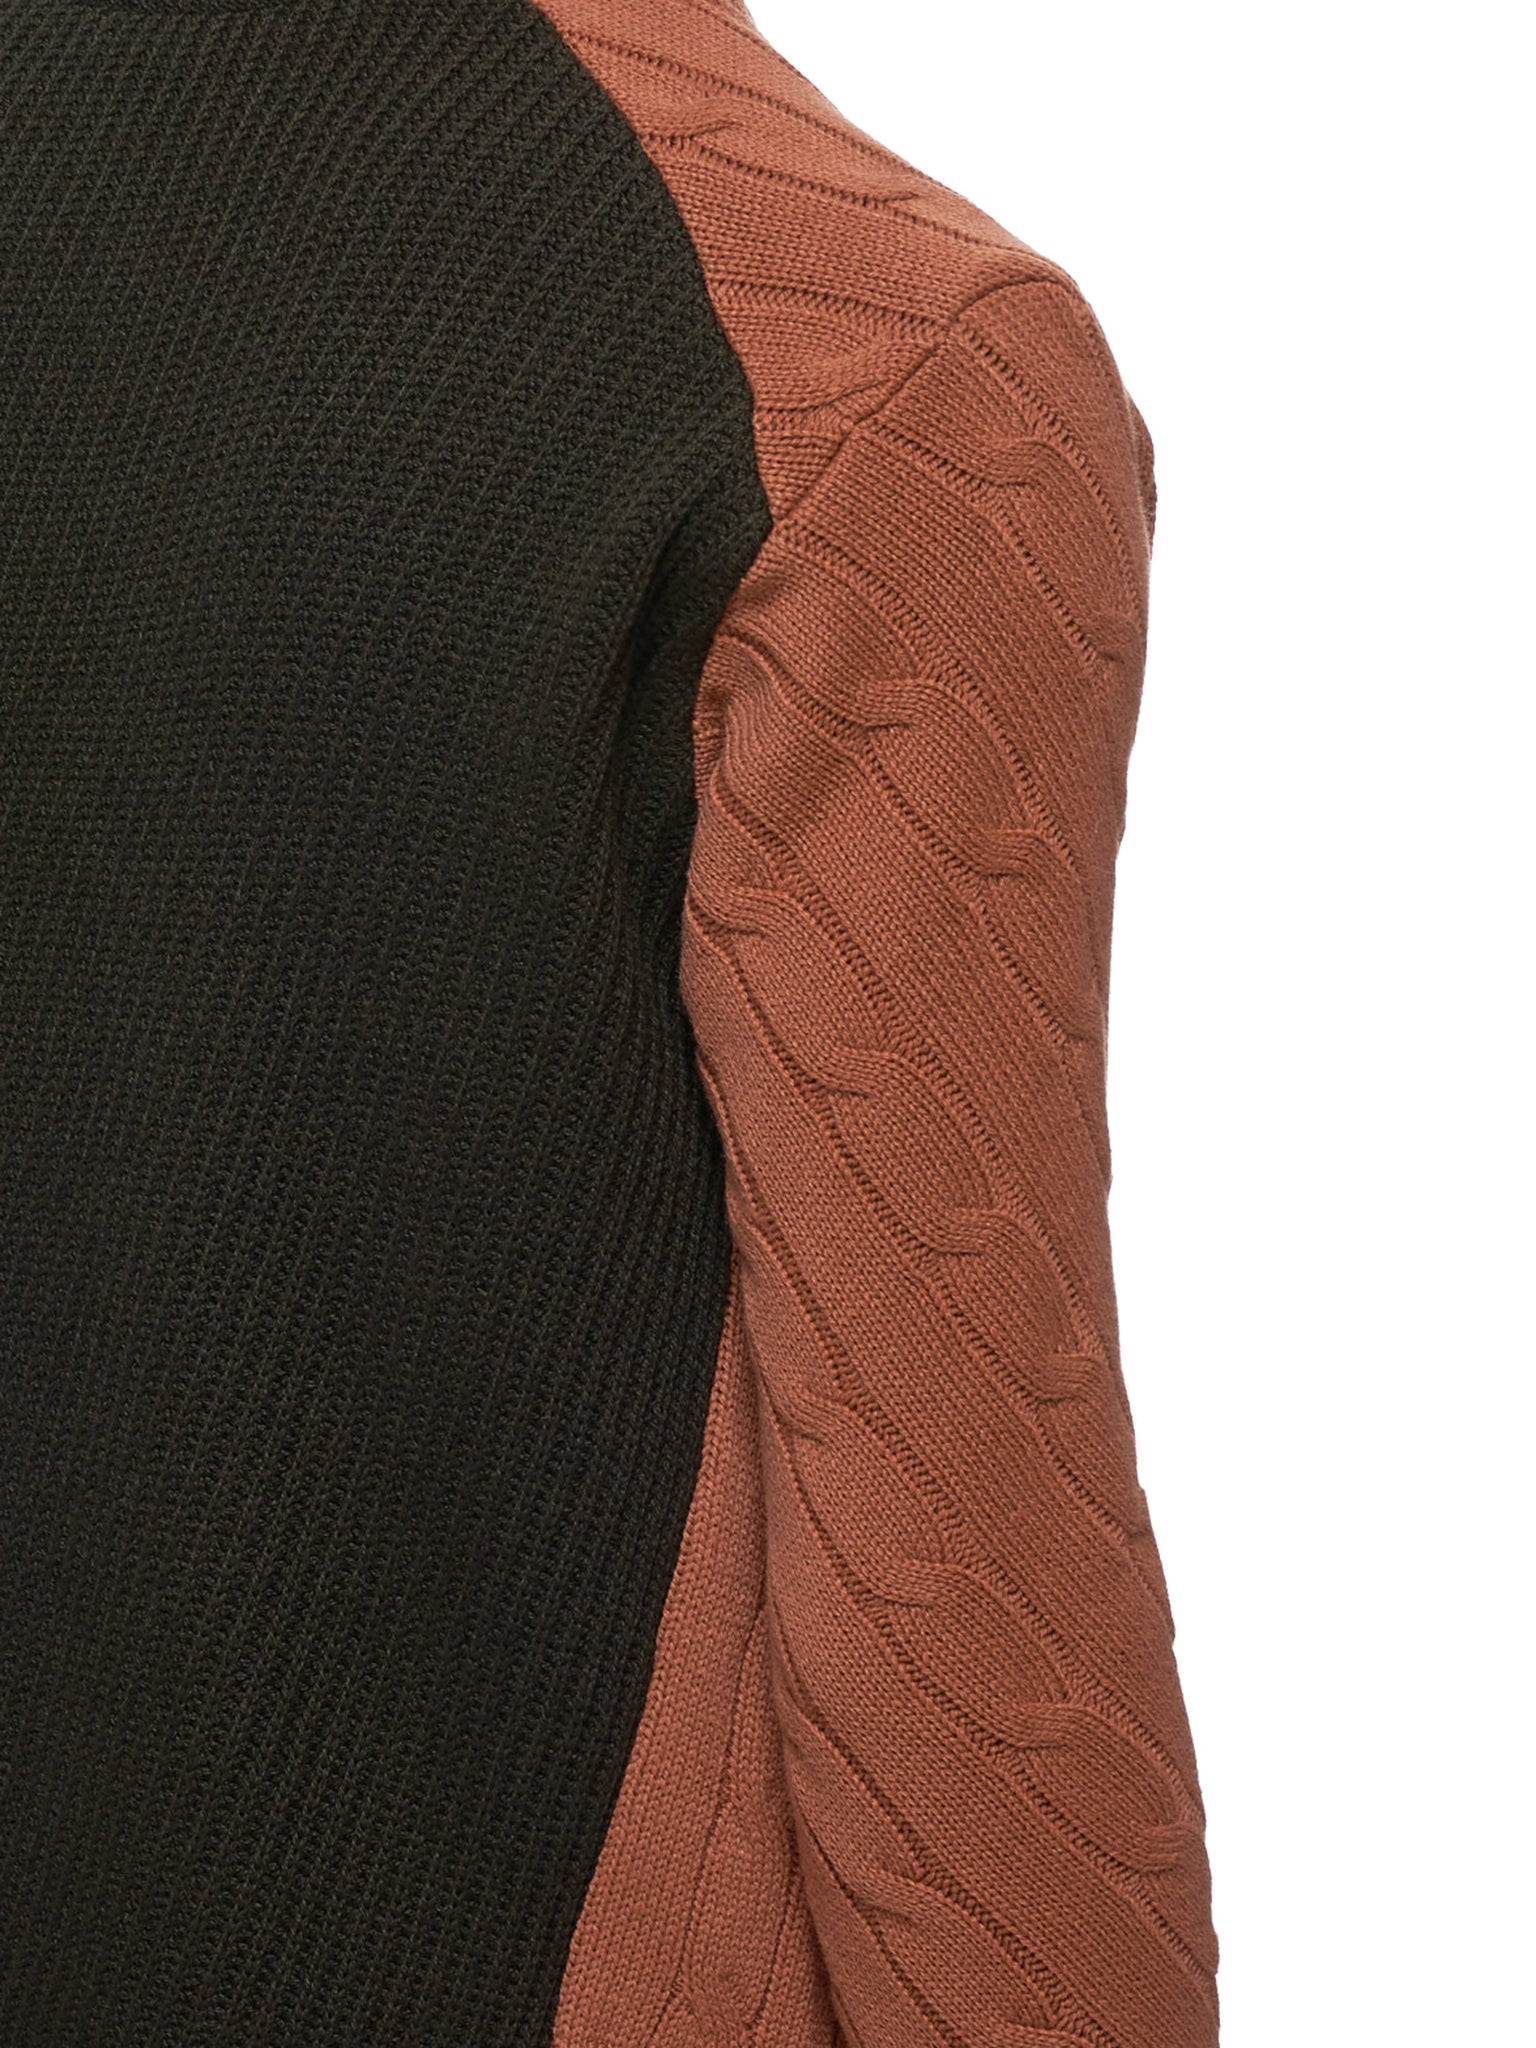 Delada Sweater - Hlorenzo Detail 1